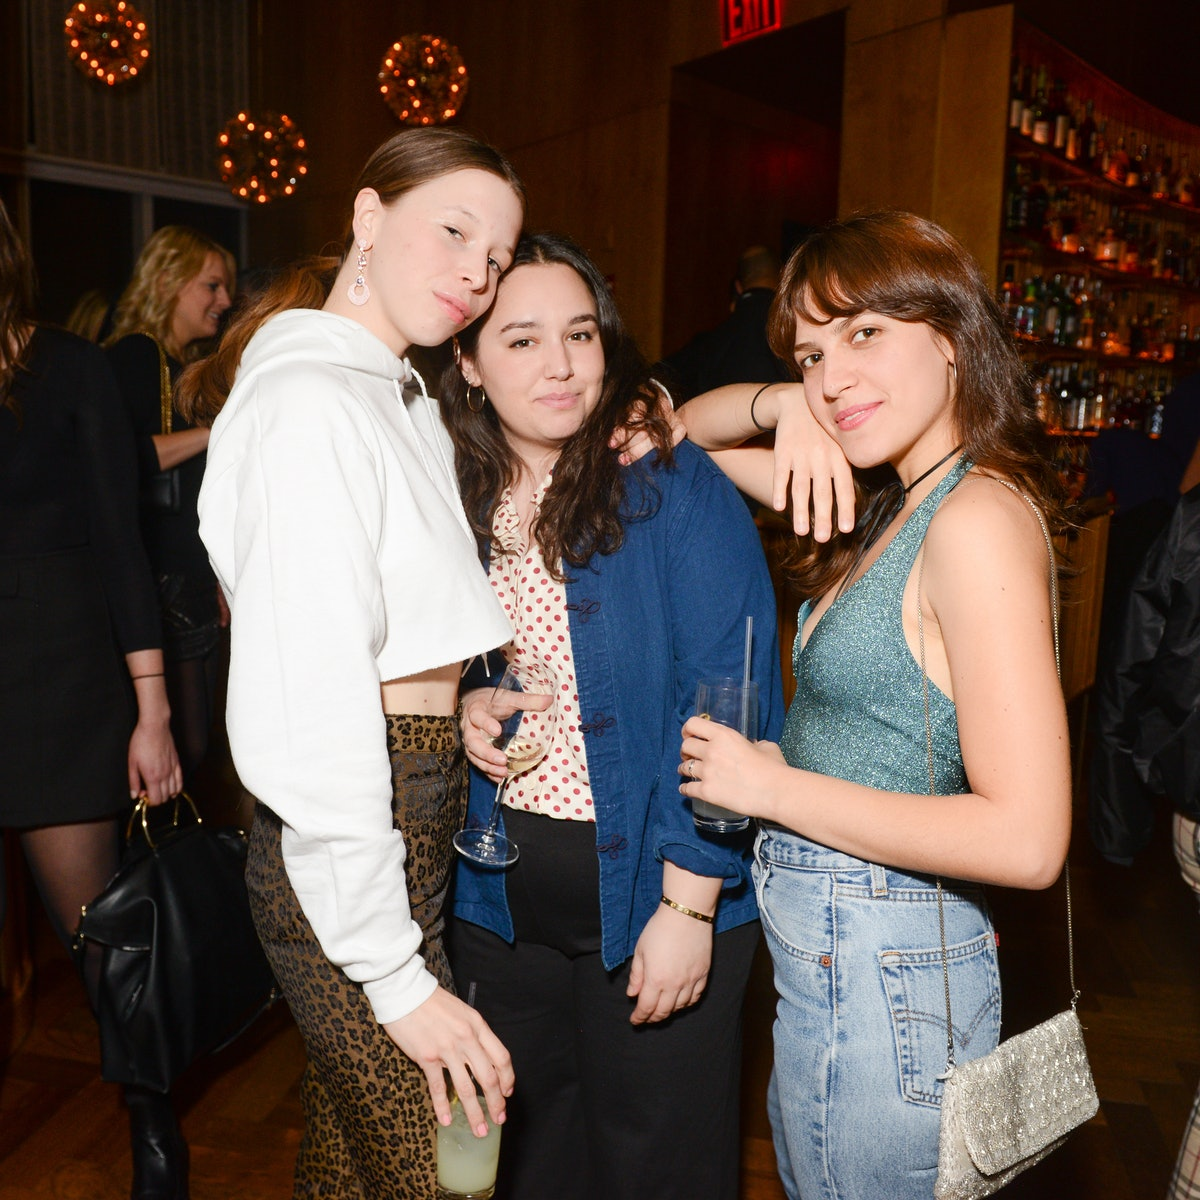 SEMAINE HOSTS A PARTY TO CELEBRATE TRACY ANTONOPOLOUS SHORT FILM FOR SEMAINE STARRING GIA COPPOLA